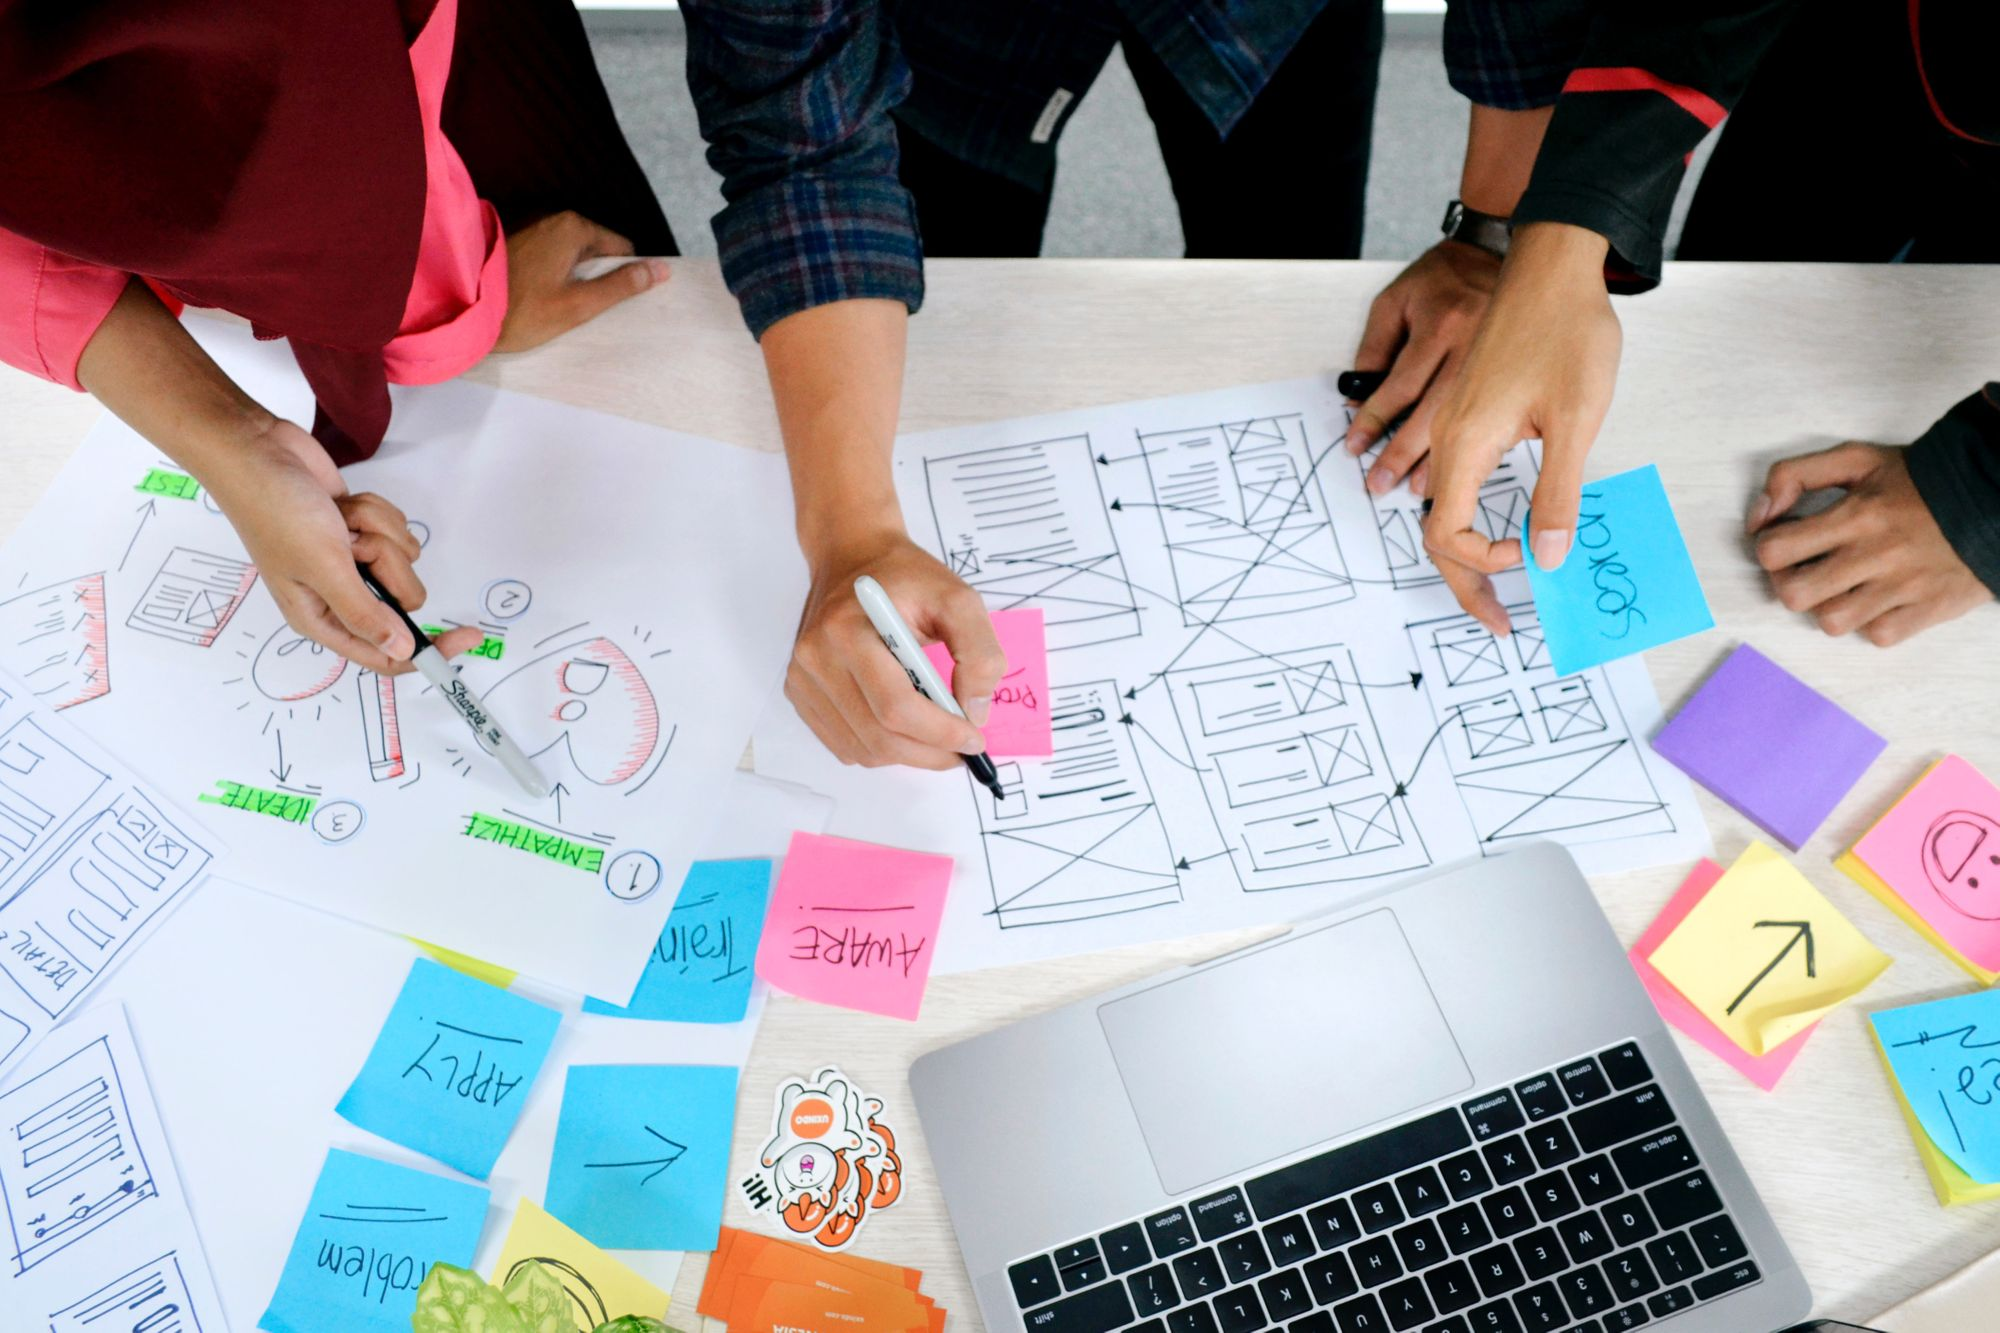 Three people building out a highly functional wireframe with multi-colored sticky notes and illustrations.